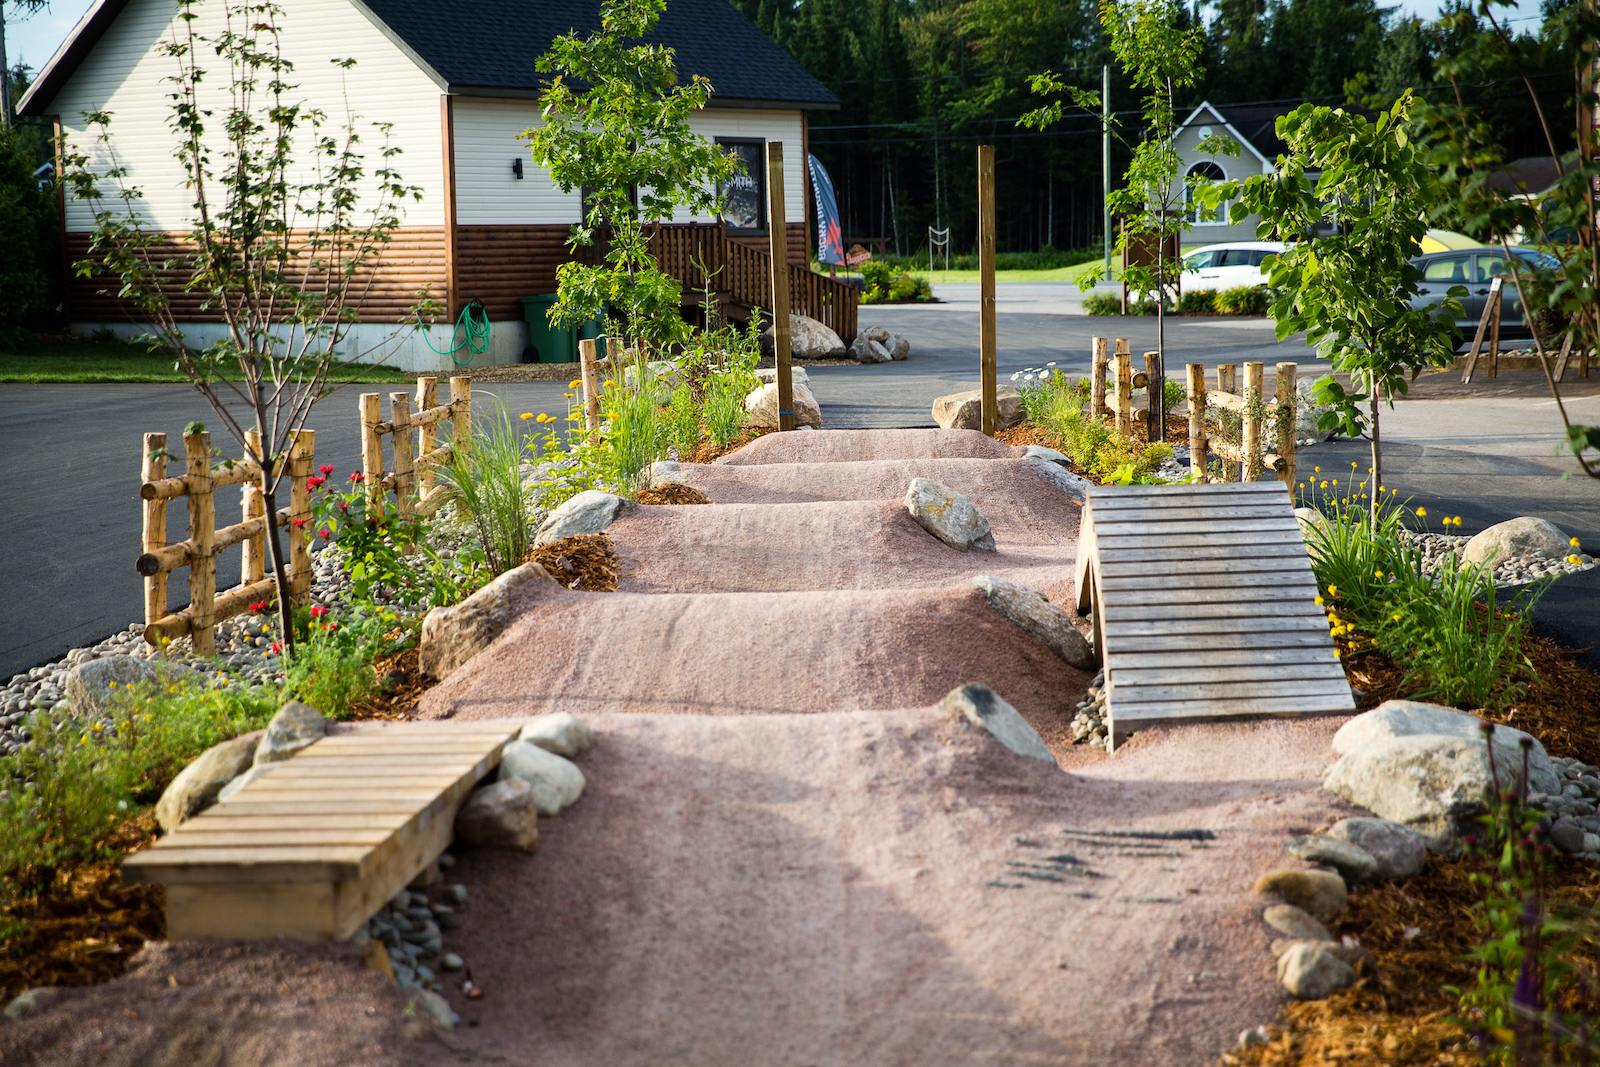 Not your average hotel landscaping job here. This is the first of what will be a pumptrack circle around the Roquemont. PHOTO Ben Gavelda